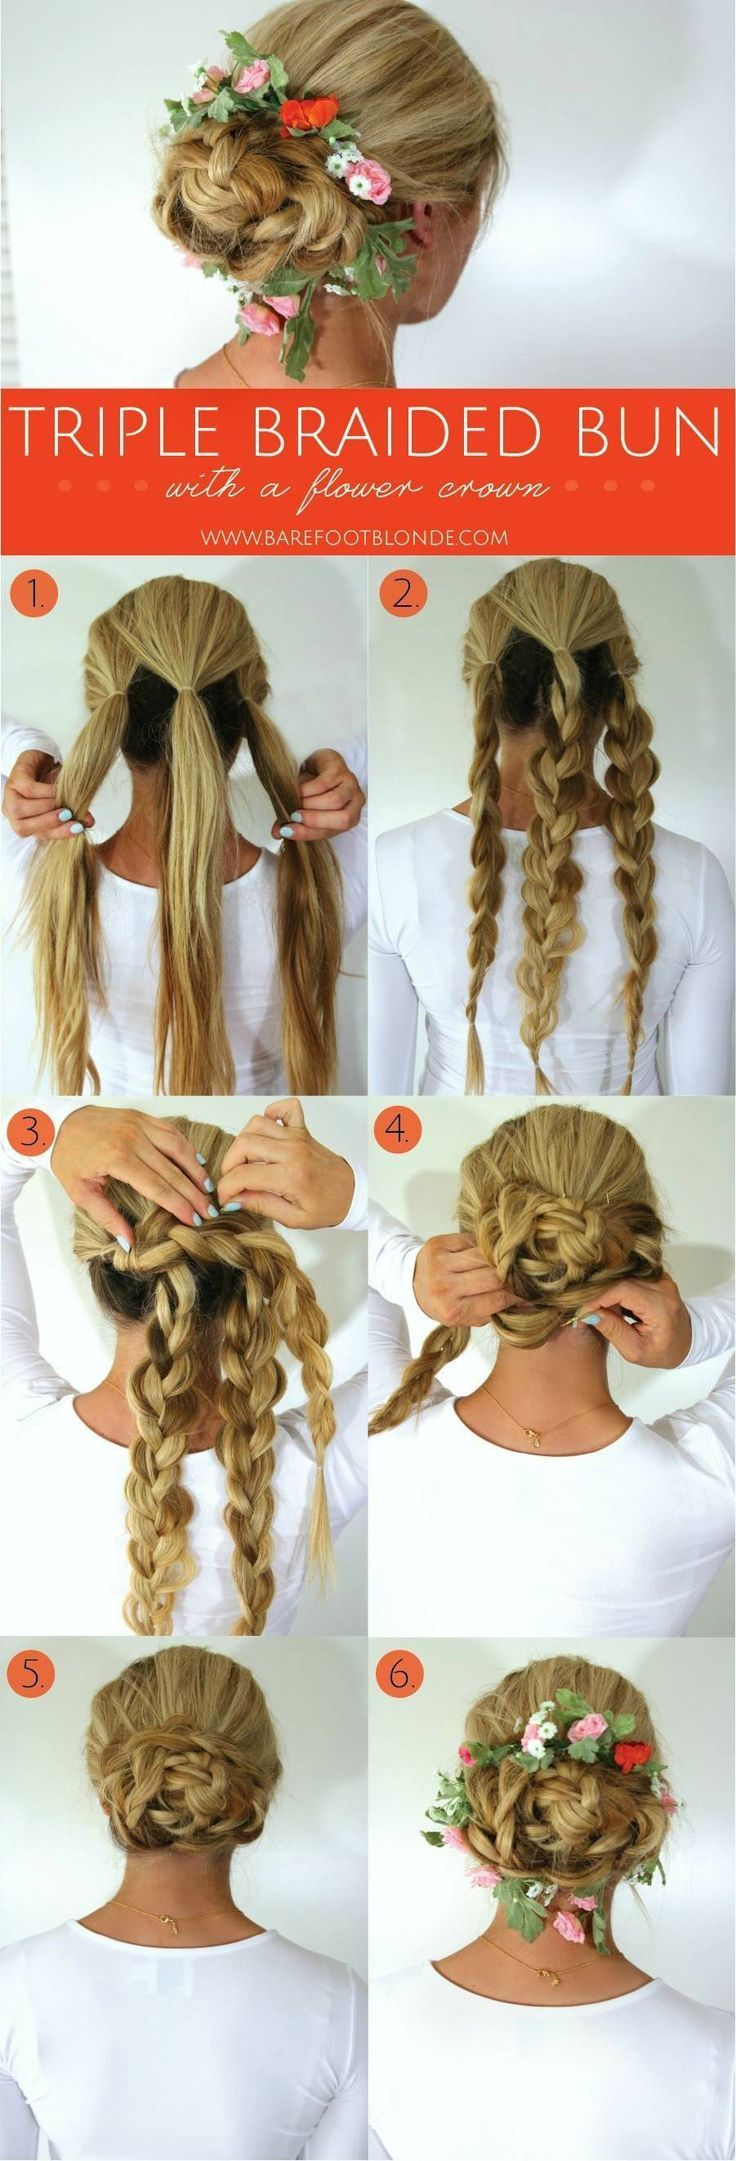 best hairstyles images on pinterest gorgeous hair hair dos